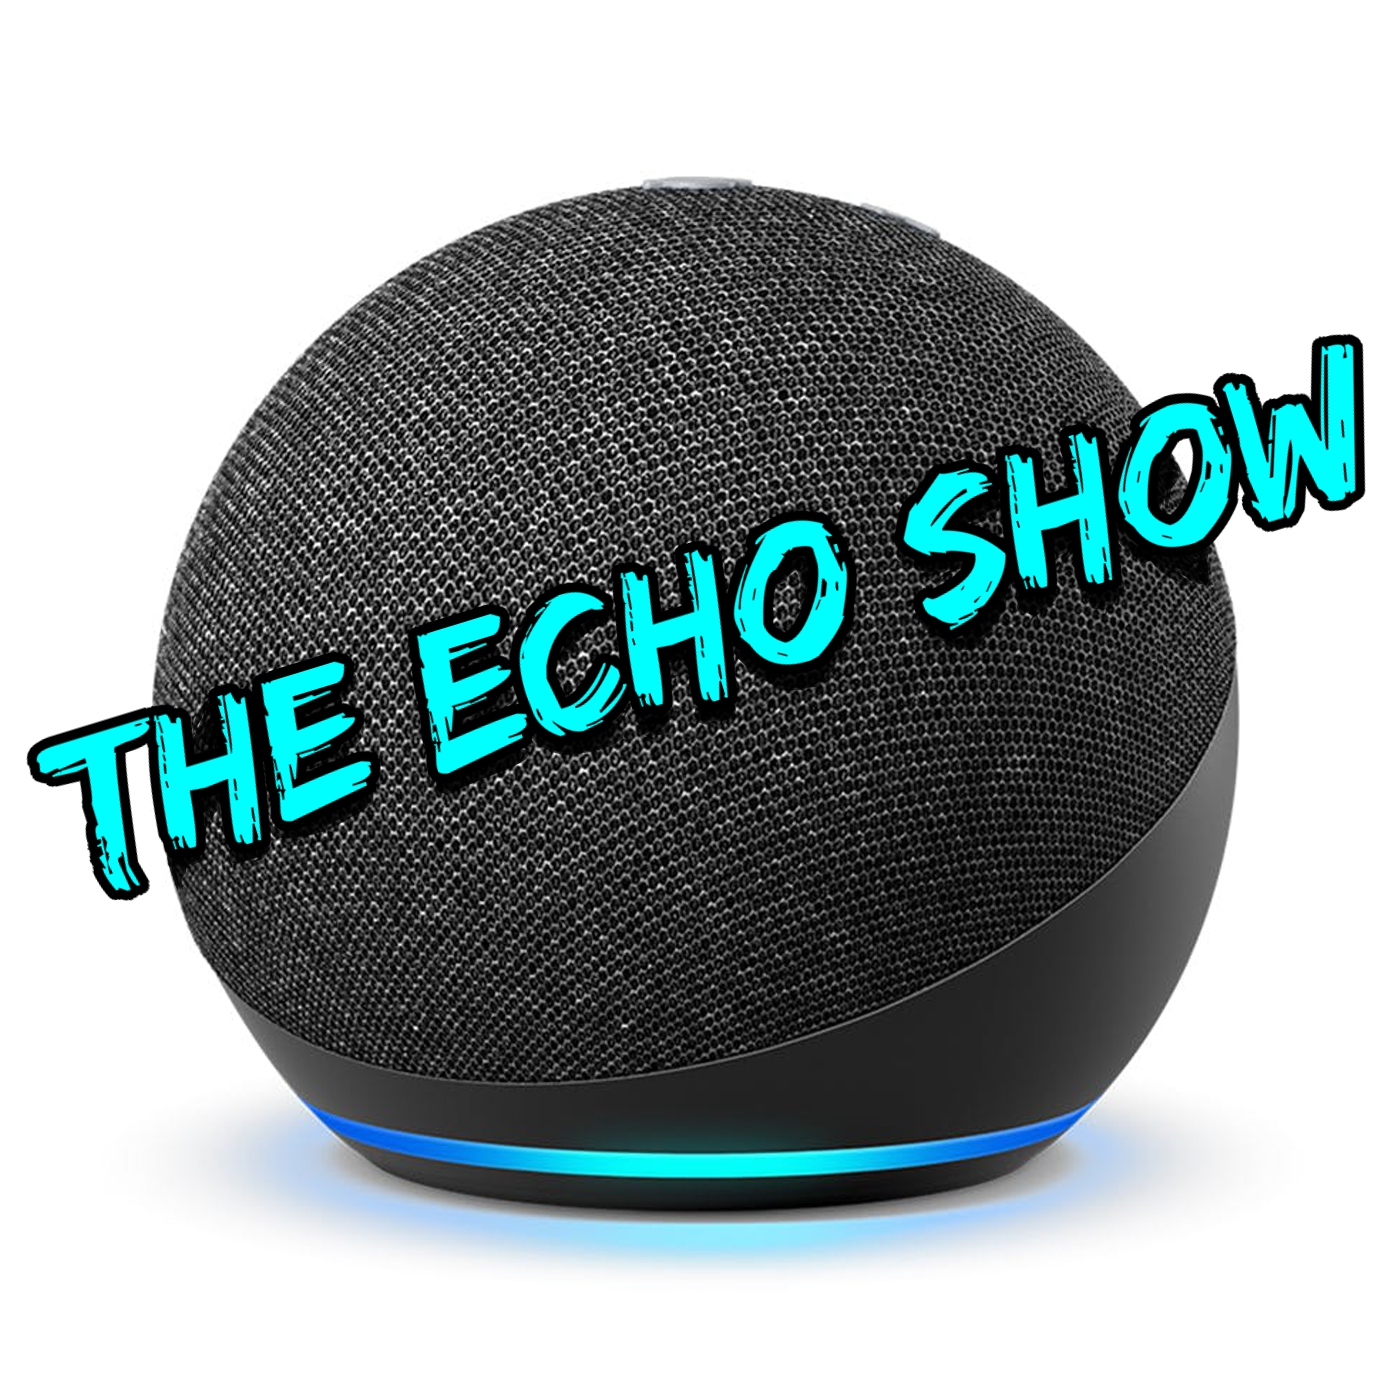 The Echo Show - the all things Alexa podcast